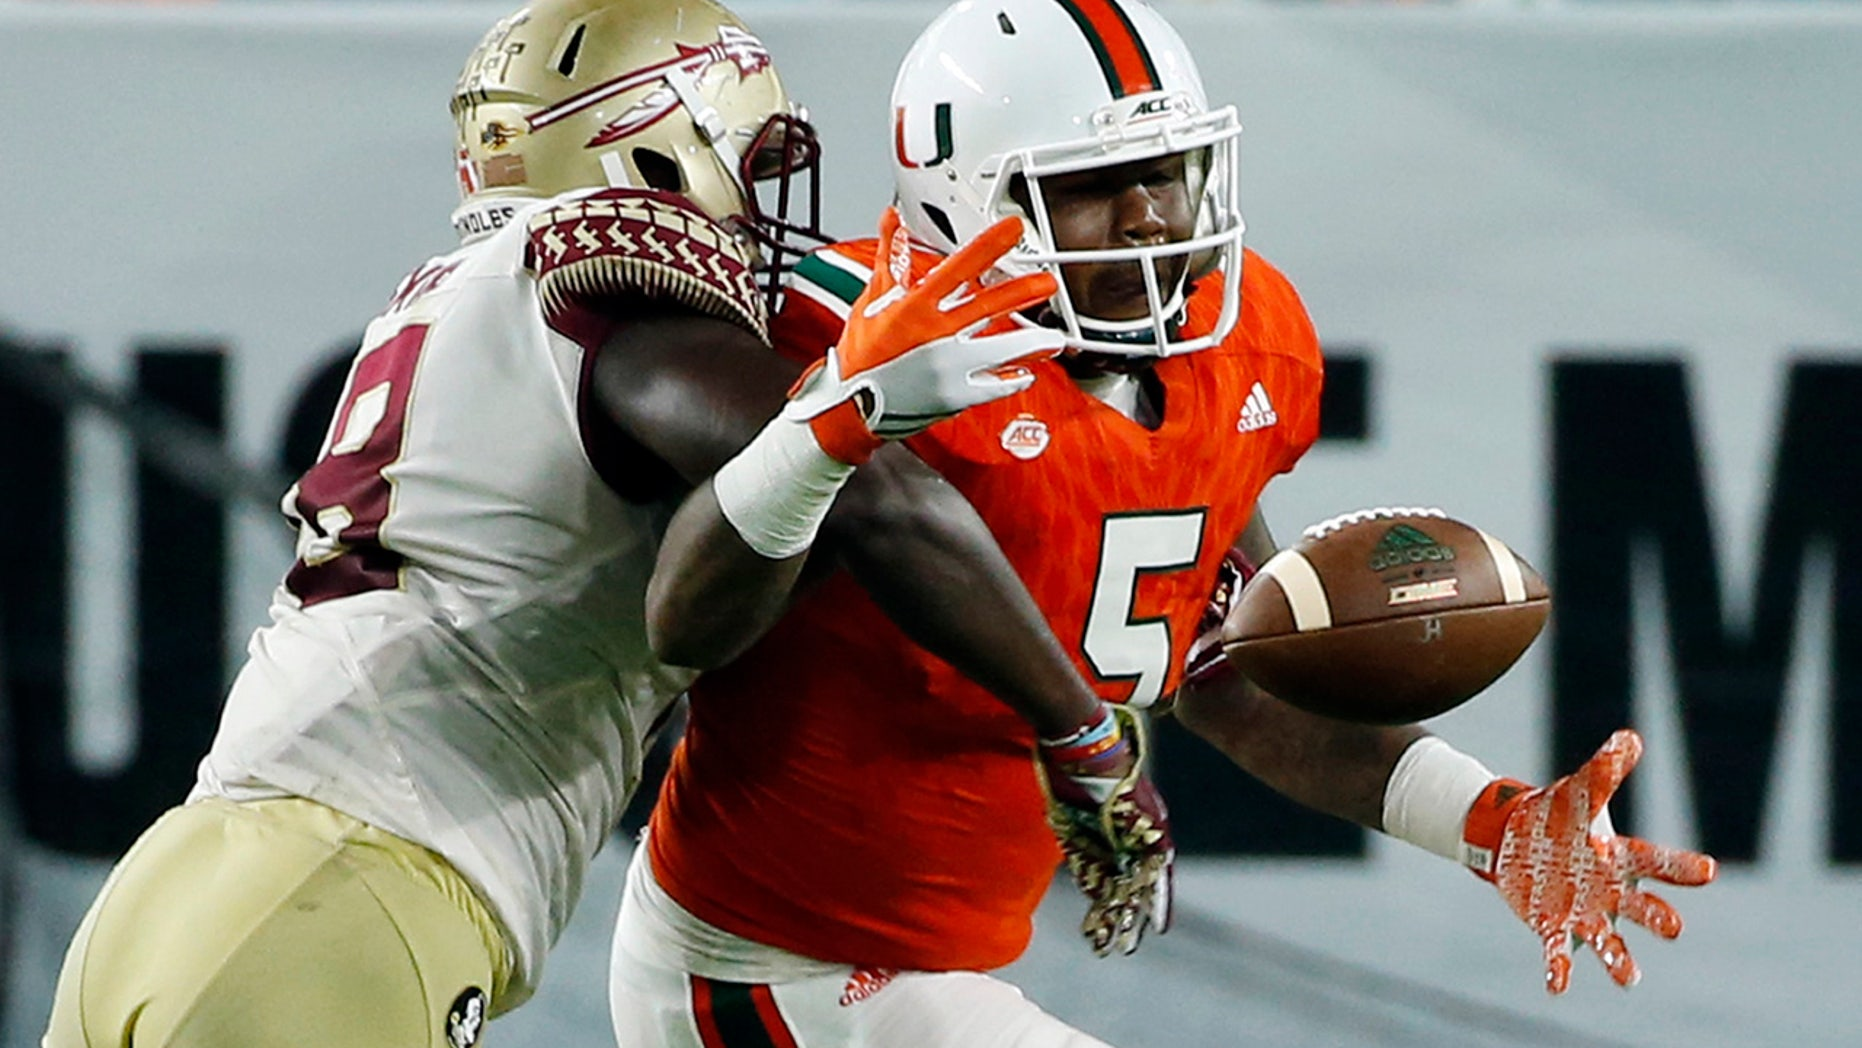 Miami Hurricanes tight end Standish Dobard (5) can't hold on to the ball as Florida State linebacker Ro'Derrick Hoskins (18) defends during the second half of an NCAA college football game, Saturday, Oct. 8, 2016, in Miami Gardens. (AP Photo/Wilfredo Lee)